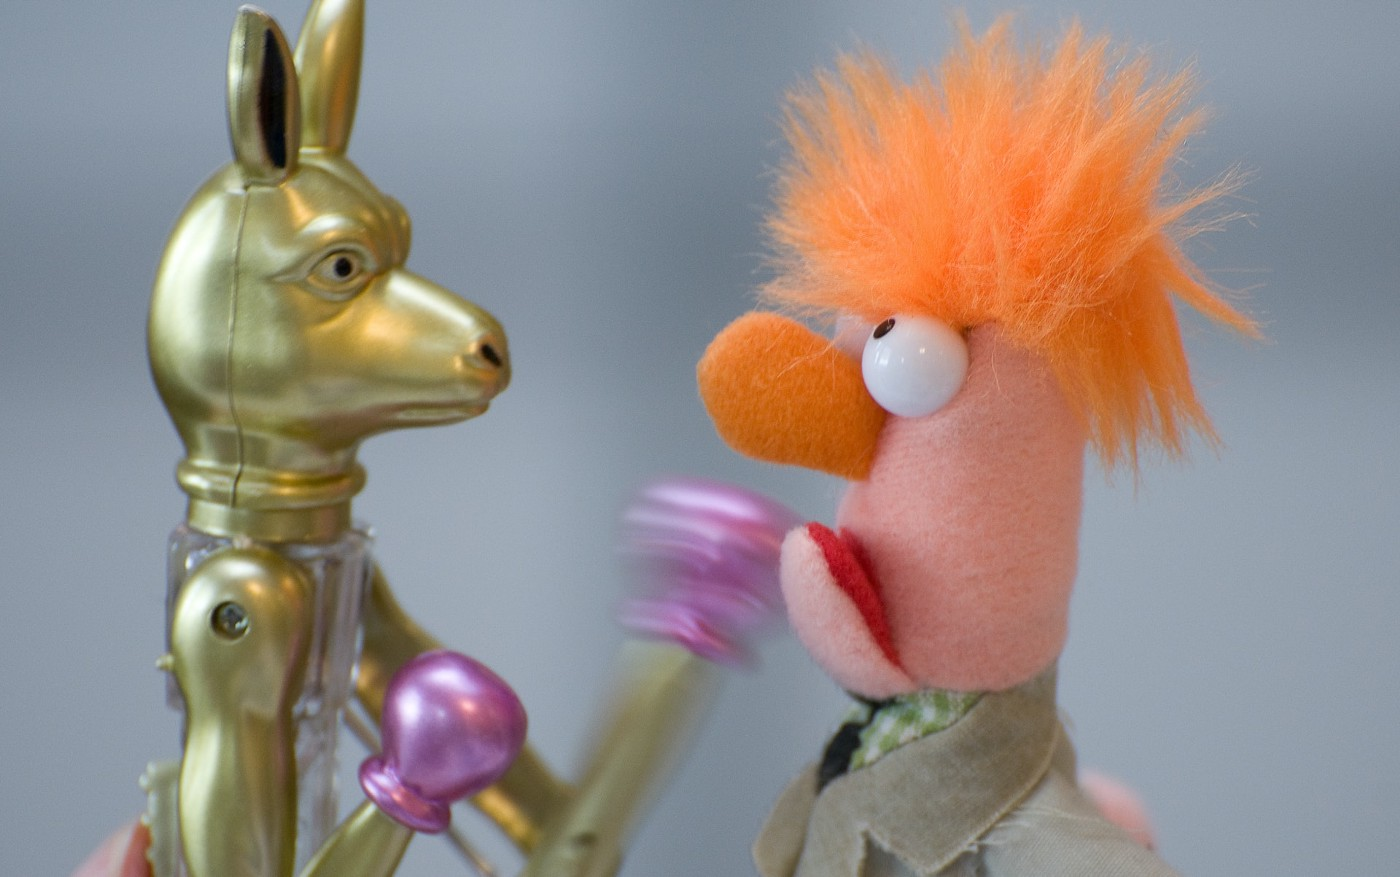 Image of a metal toy dog boxing a muppet.